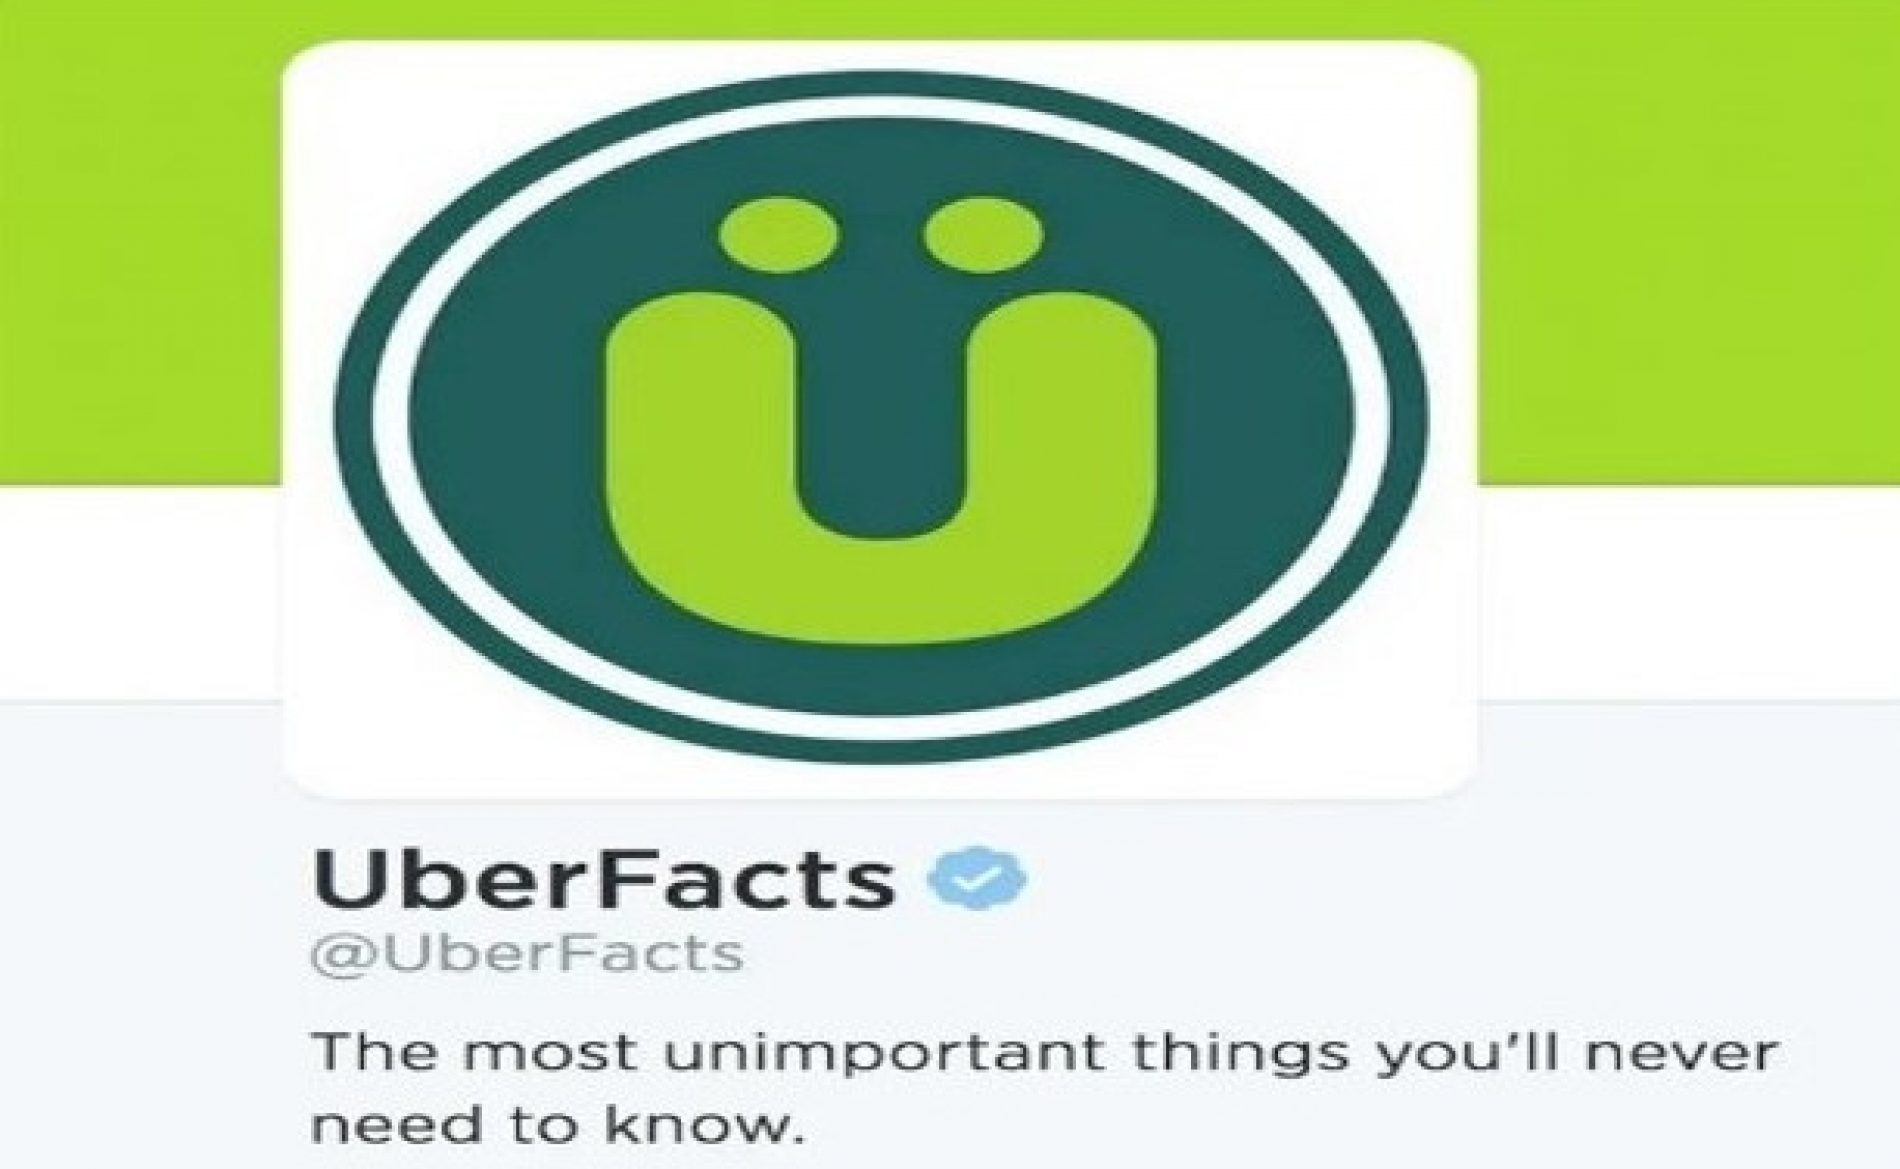 According to Uber-Facts…